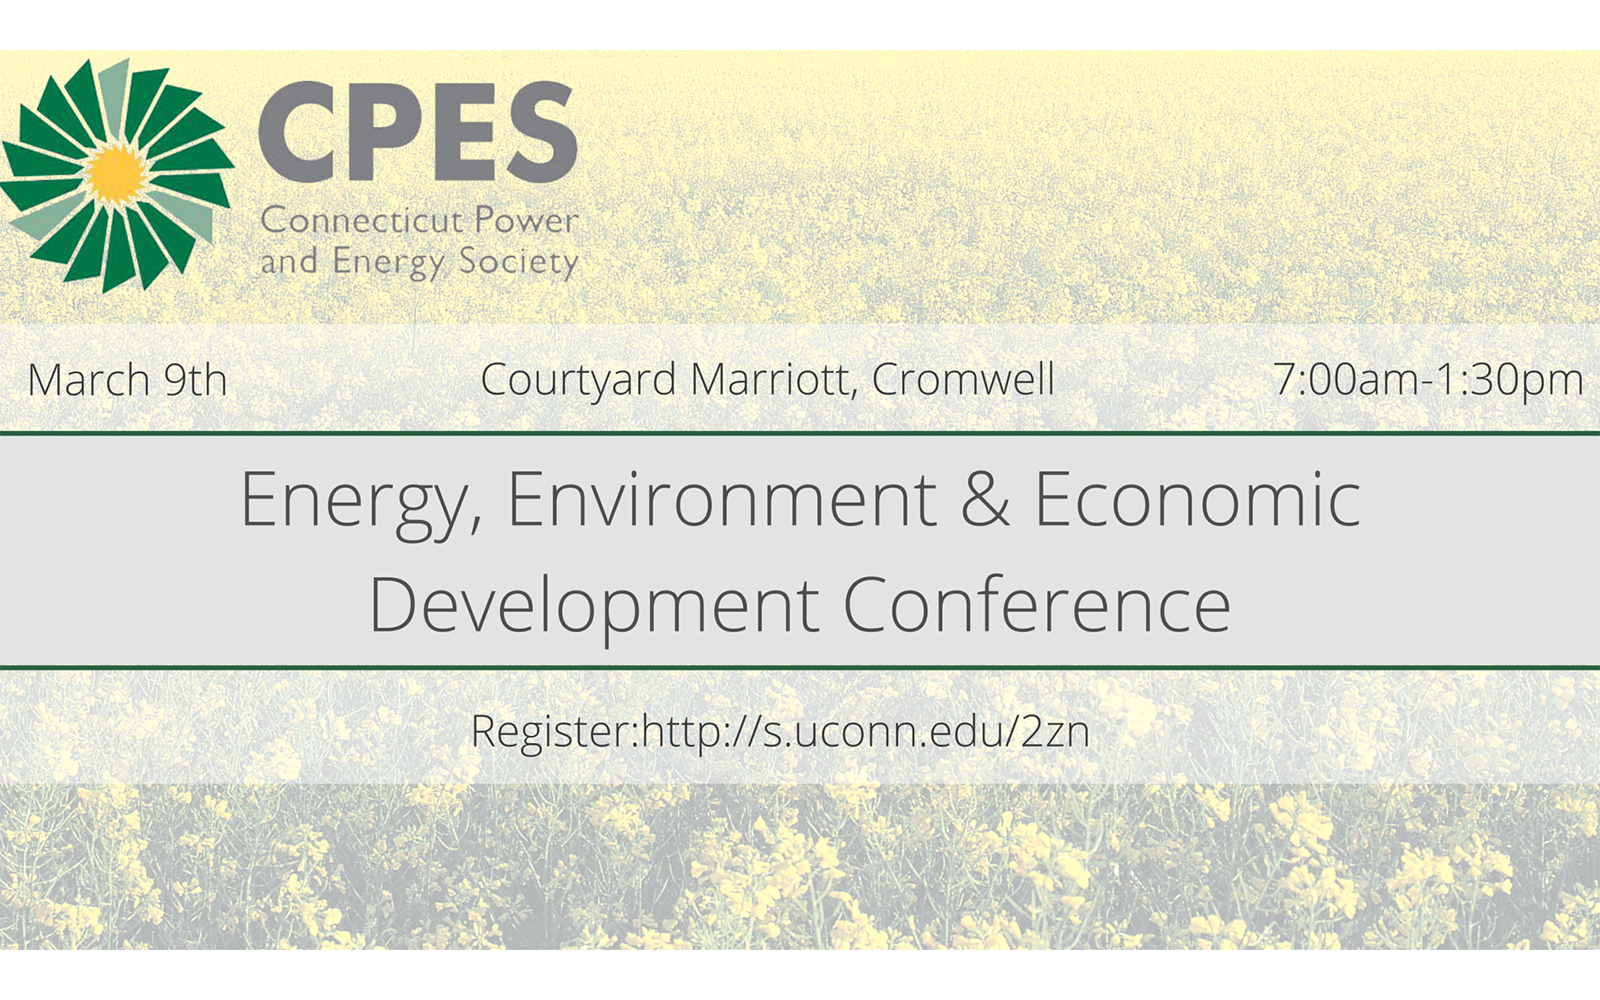 Connecticut Power and Energy Society presents the Energy, Environment & Economic Development Conference